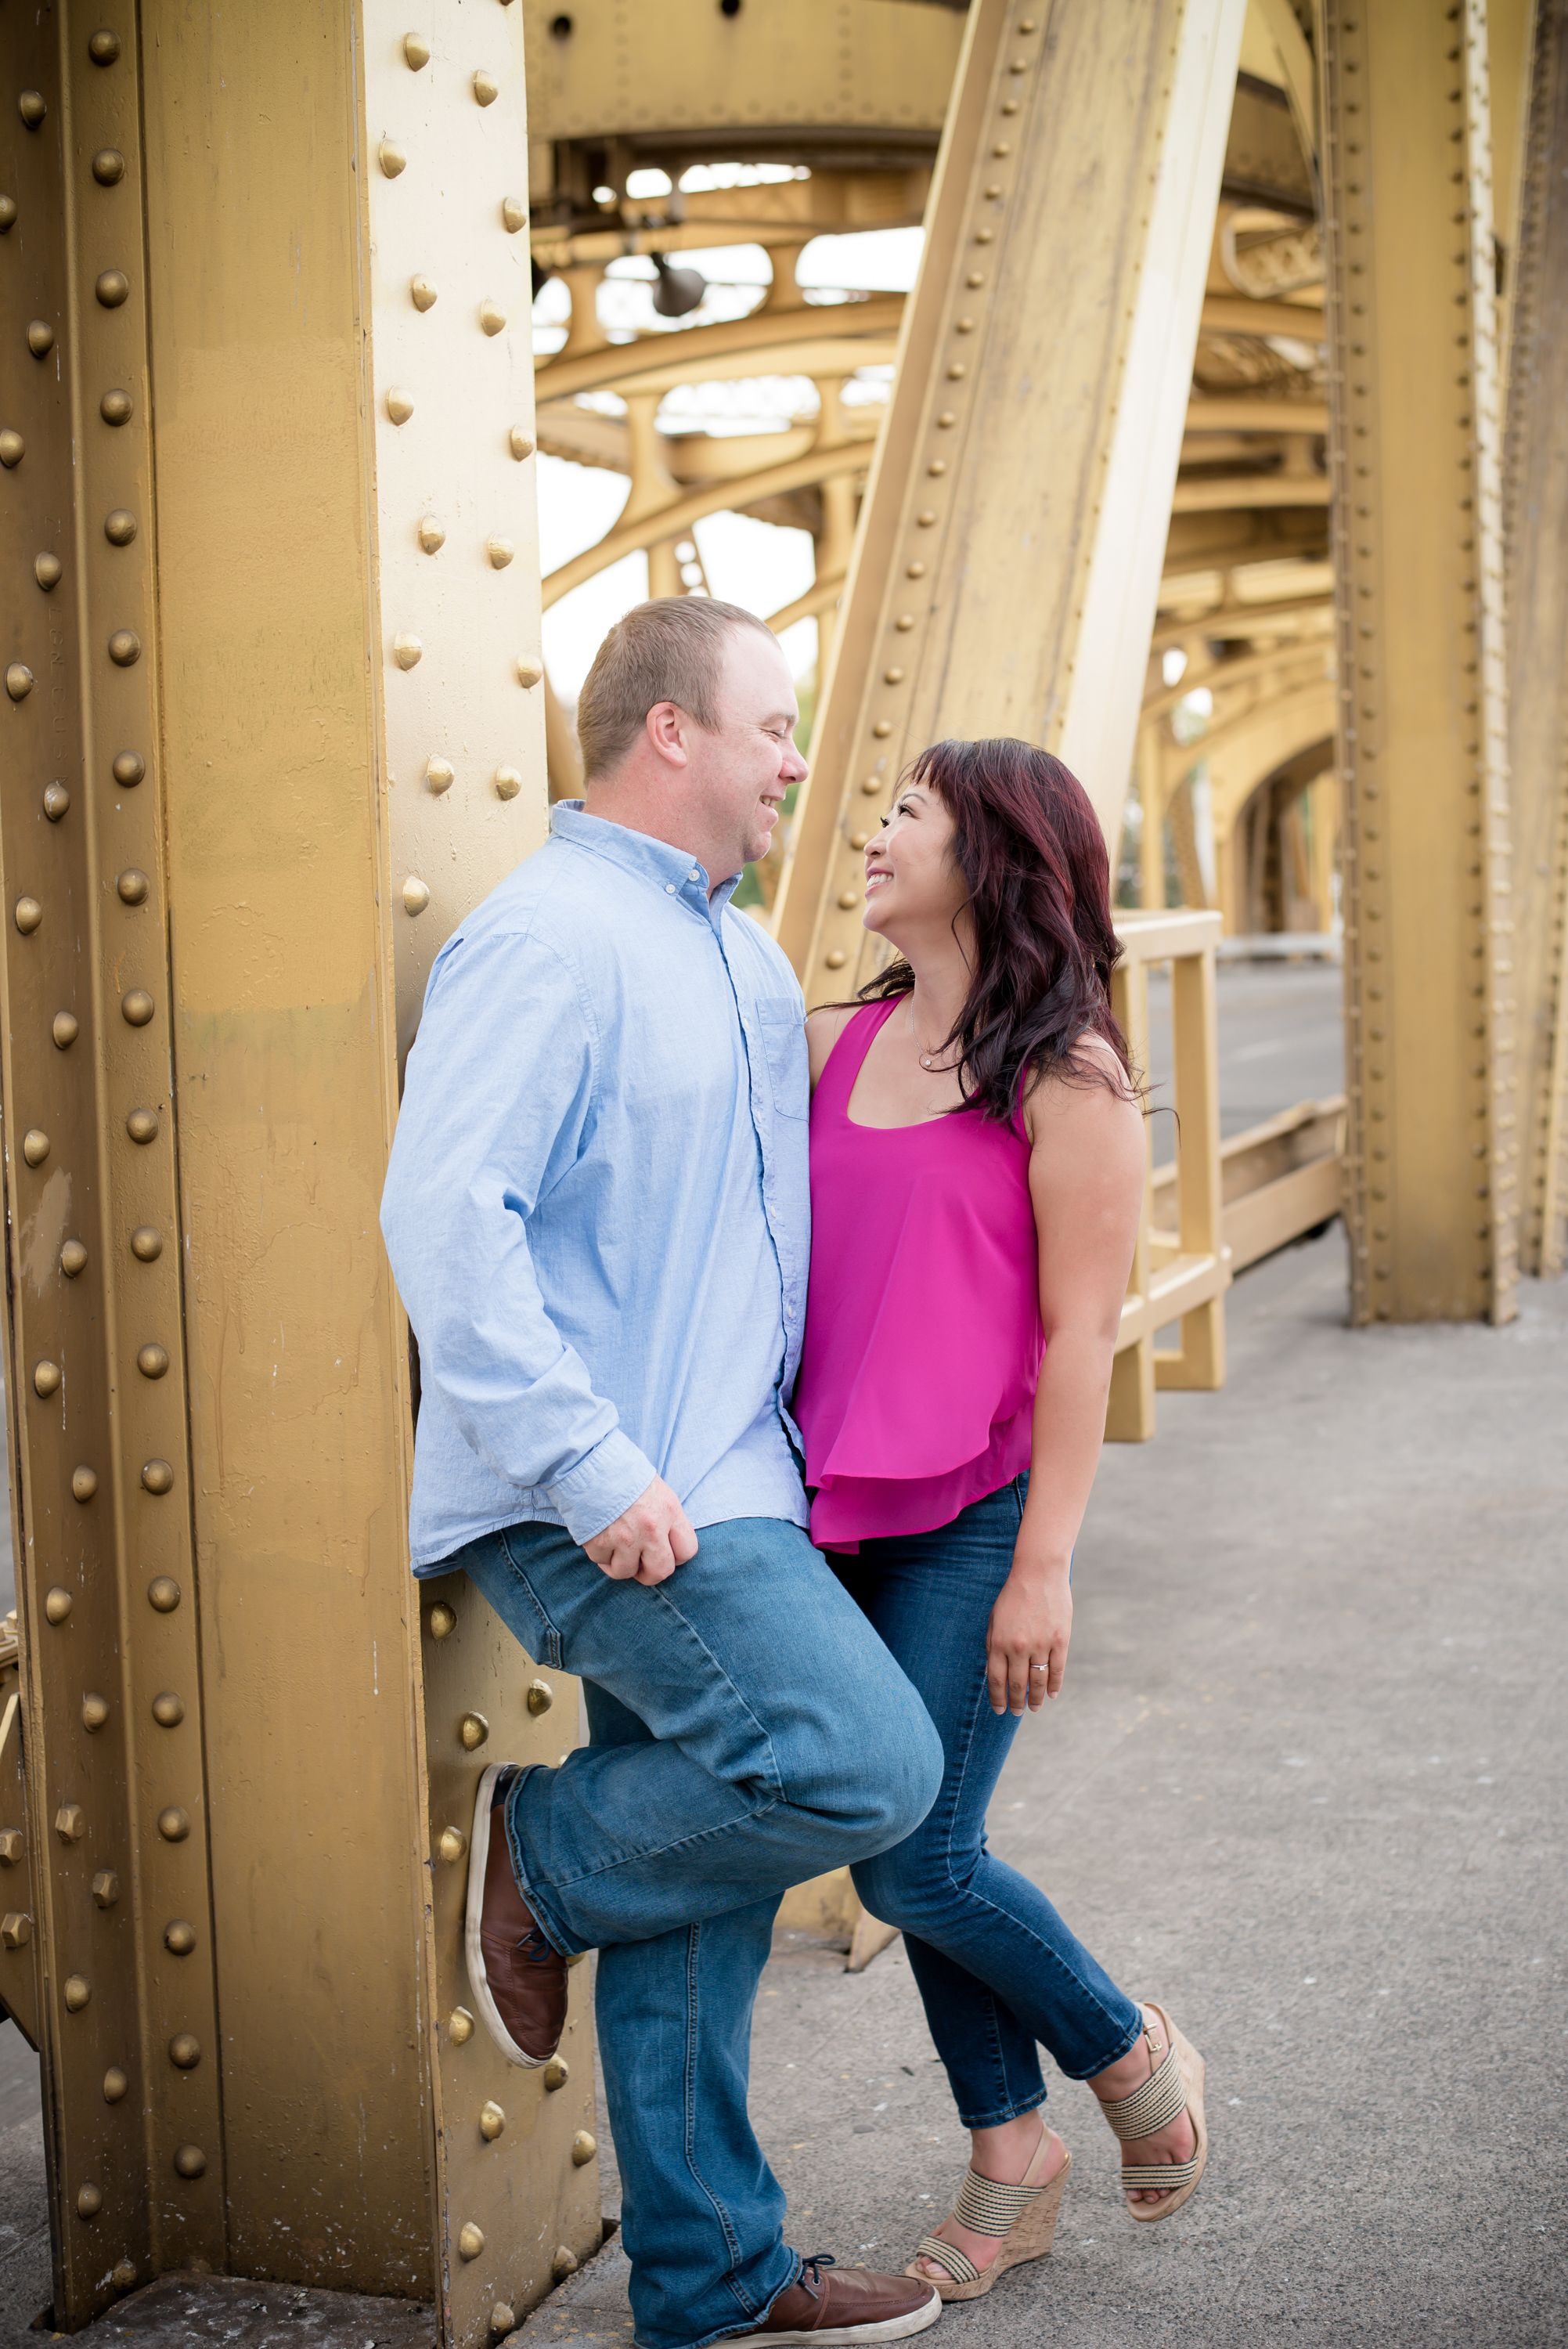 Sacramento engagement photographer - engagement photo session in Old Town Sacramento, Calif.